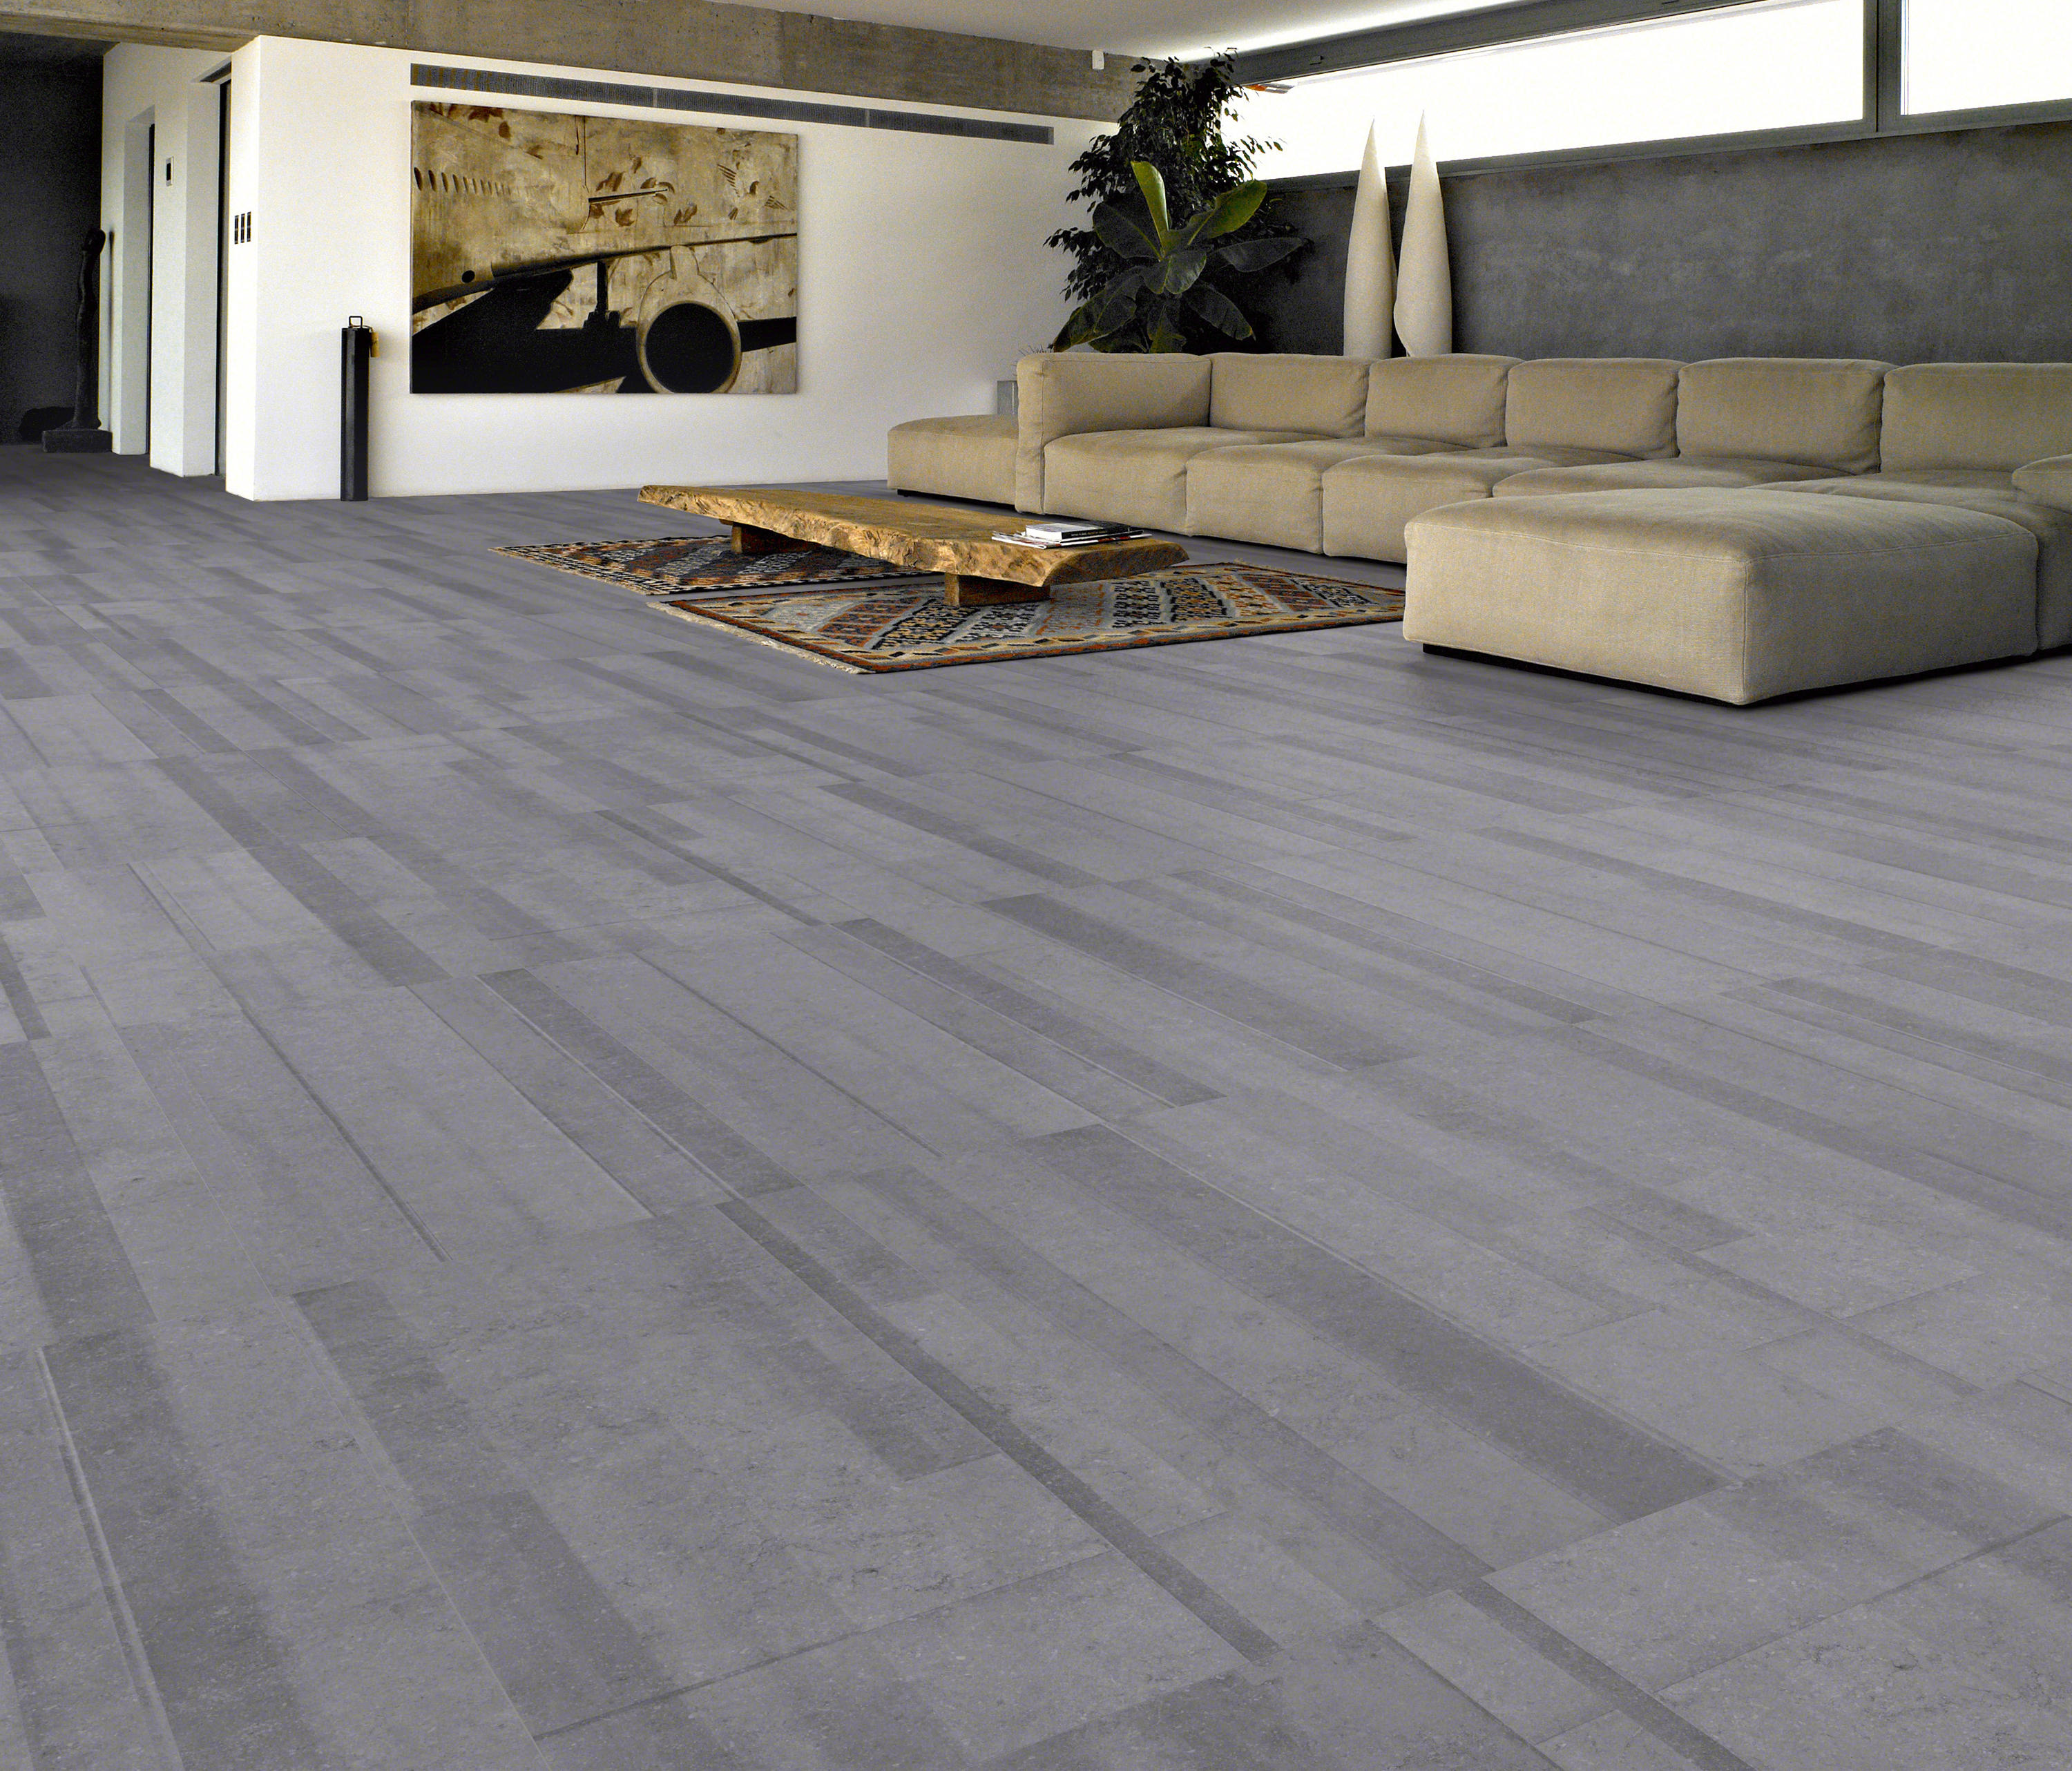 Bluestone floor tiles from vives cermica architonic bluestone by vives cermica bluestone by vives cermica dailygadgetfo Images